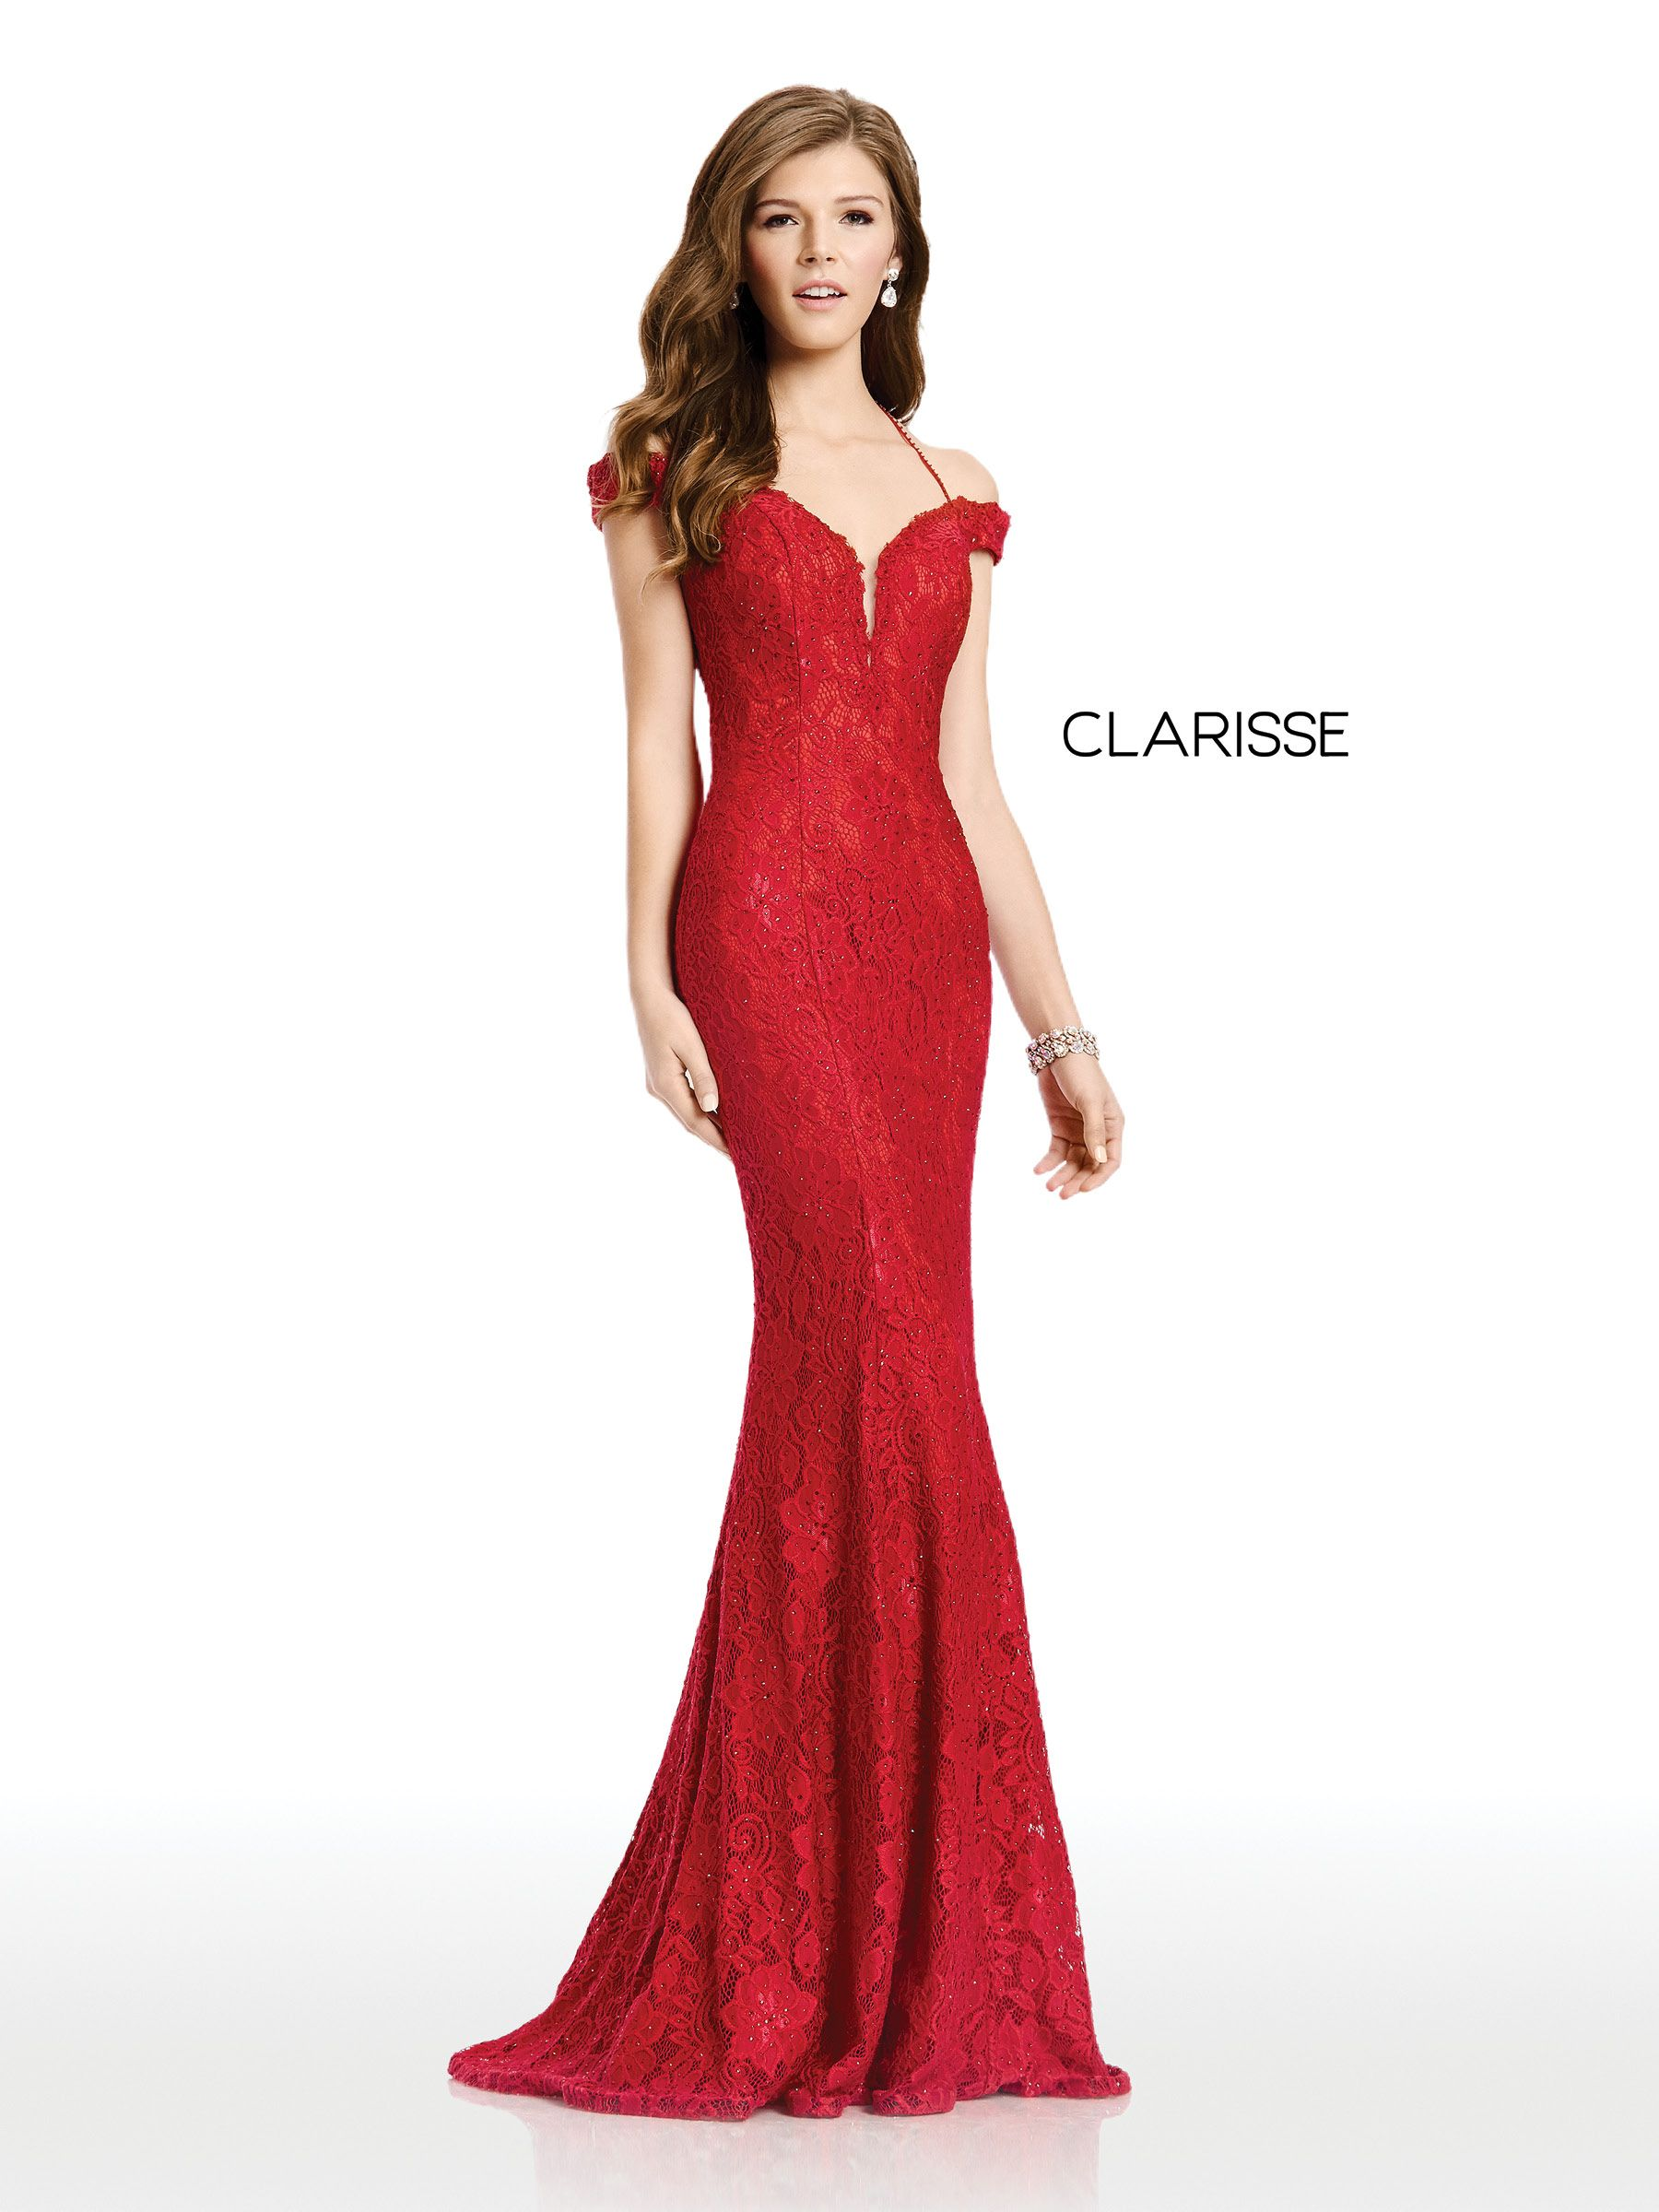 4801 - Vamp Red off the shoulder lace prom dress with a fit to flare bottom c979b07647e2